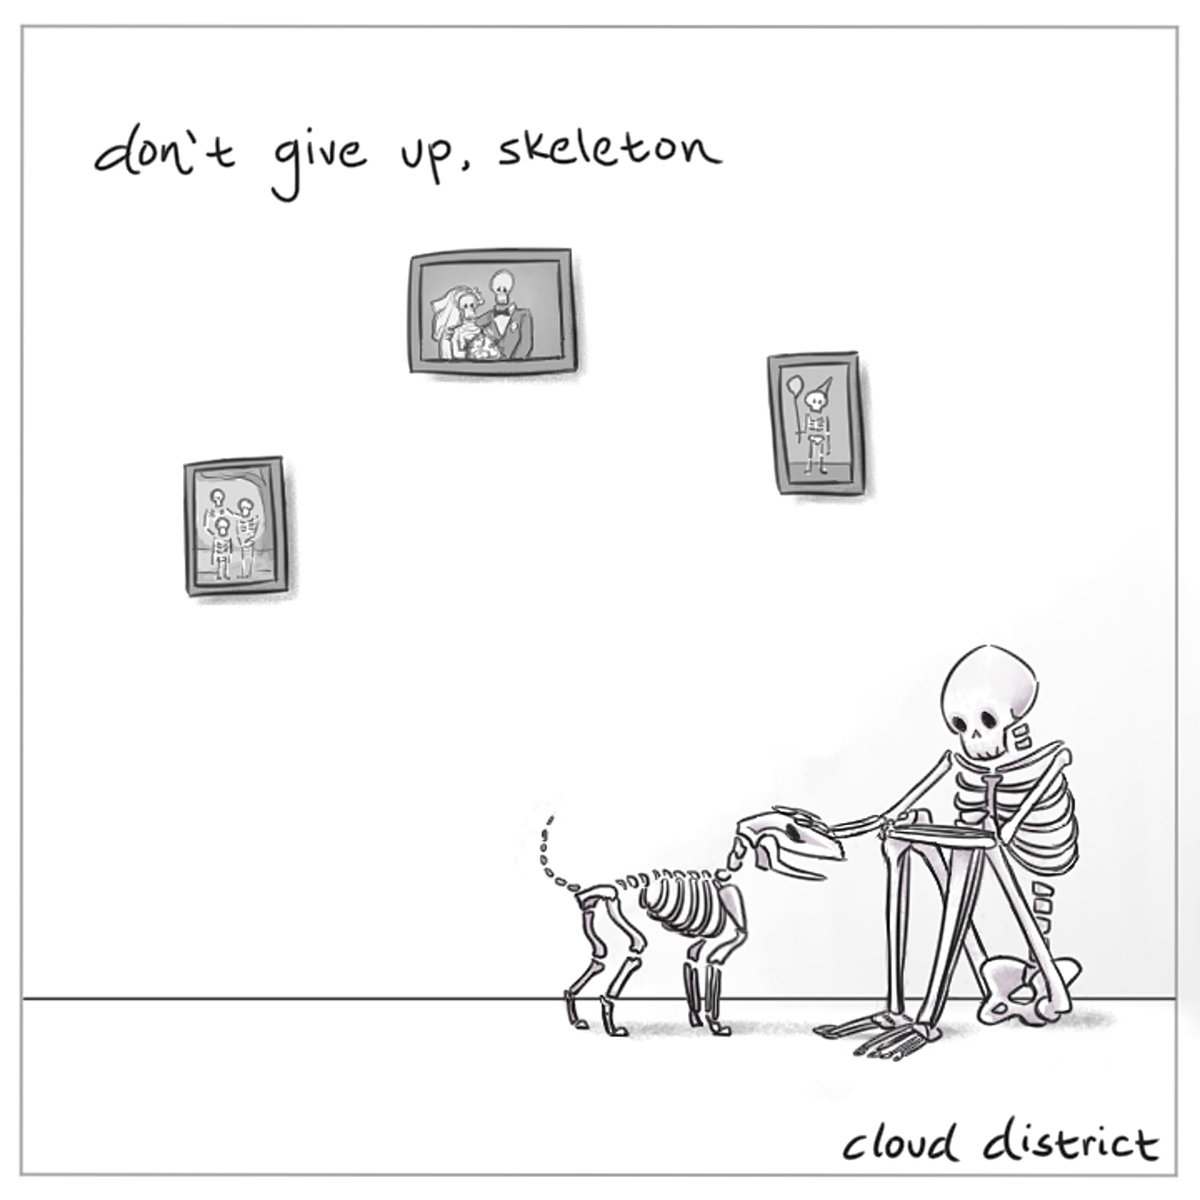 I Won T Give Up Chords Dont Give Up Skeleton Cloud District